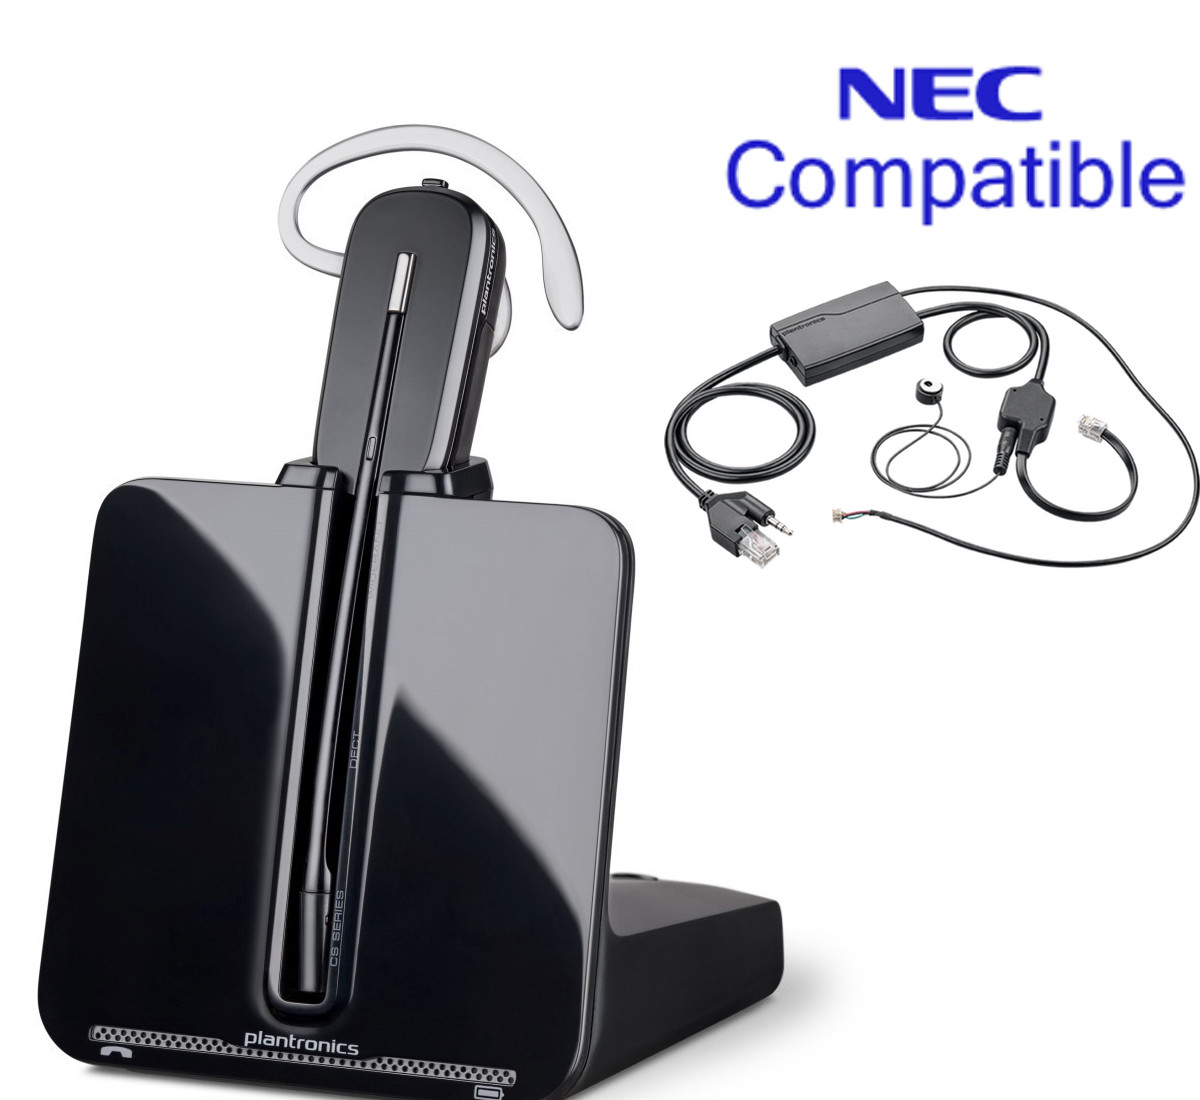 nec compatible plantronics cordless headset bundle cs540 ehs with rh headsetstore global teck com Phone Headset Schematic Headset Connector Wiring